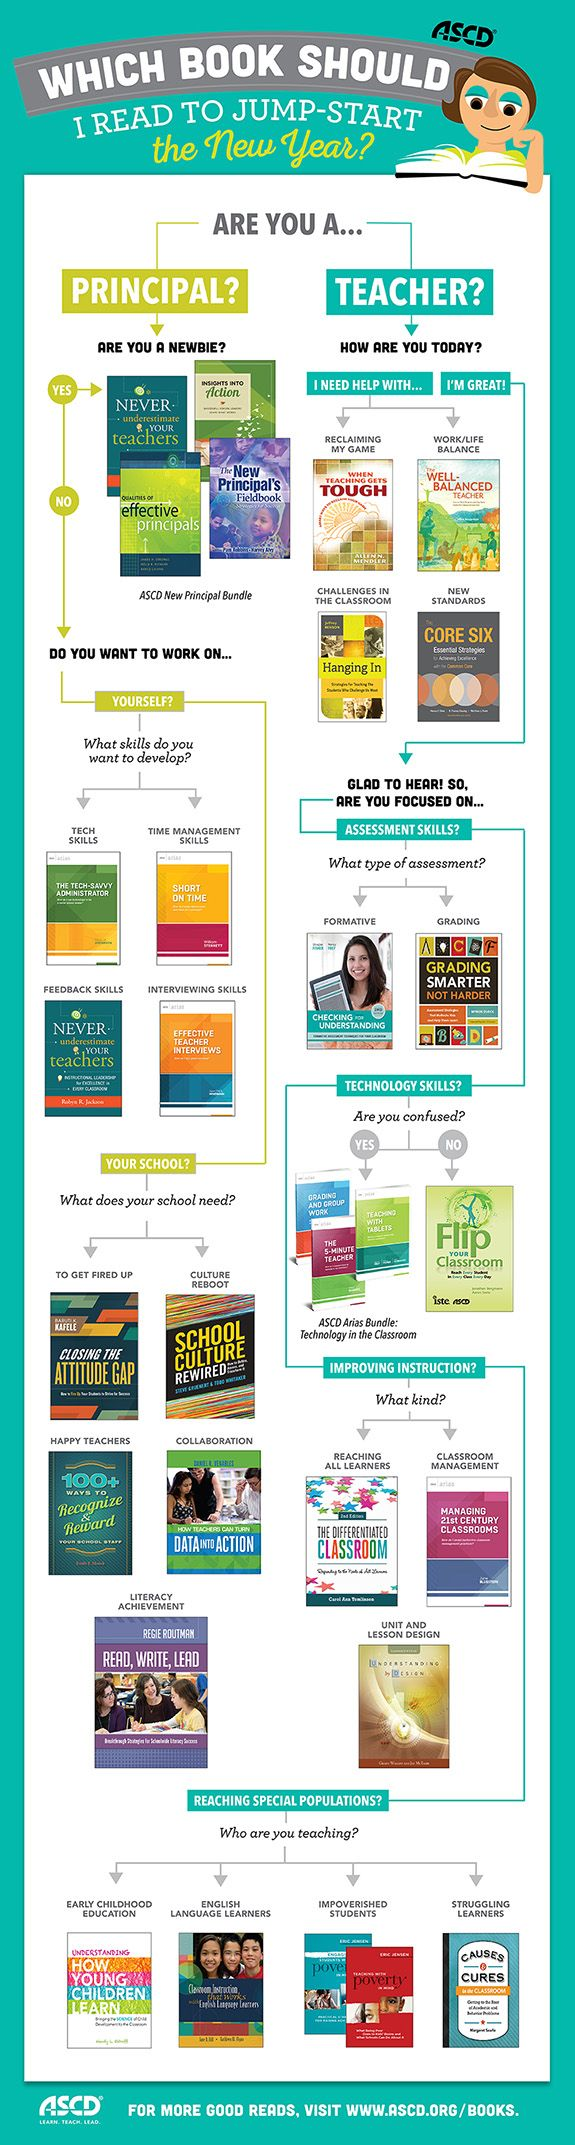 This great infographic helps teachers and principals determine which professional development publication meets their specific goals.